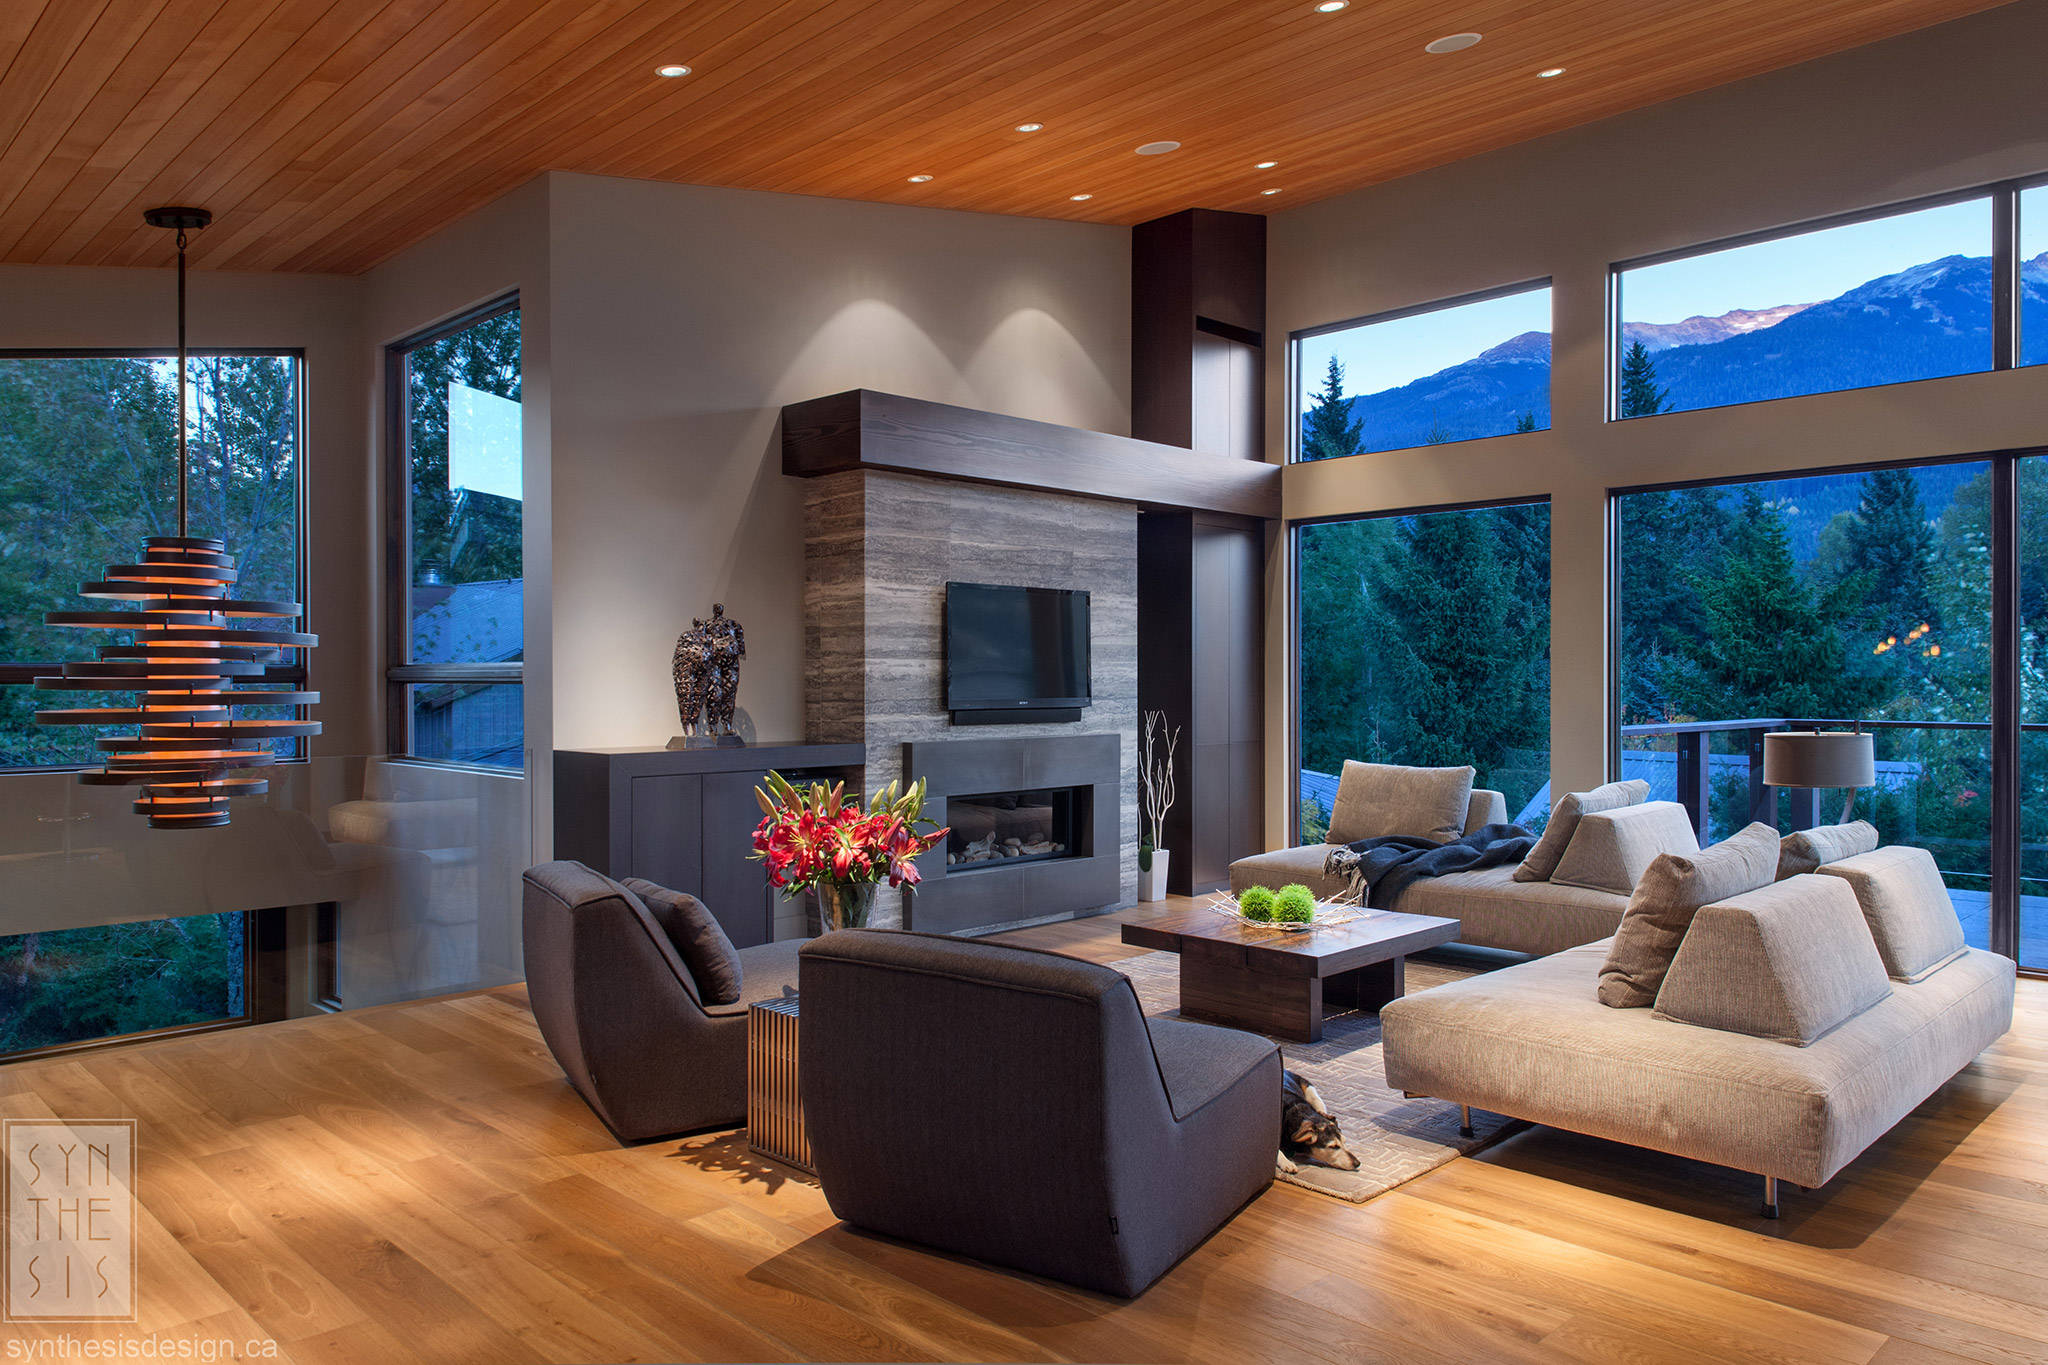 Synthesis design interior designers vancouver